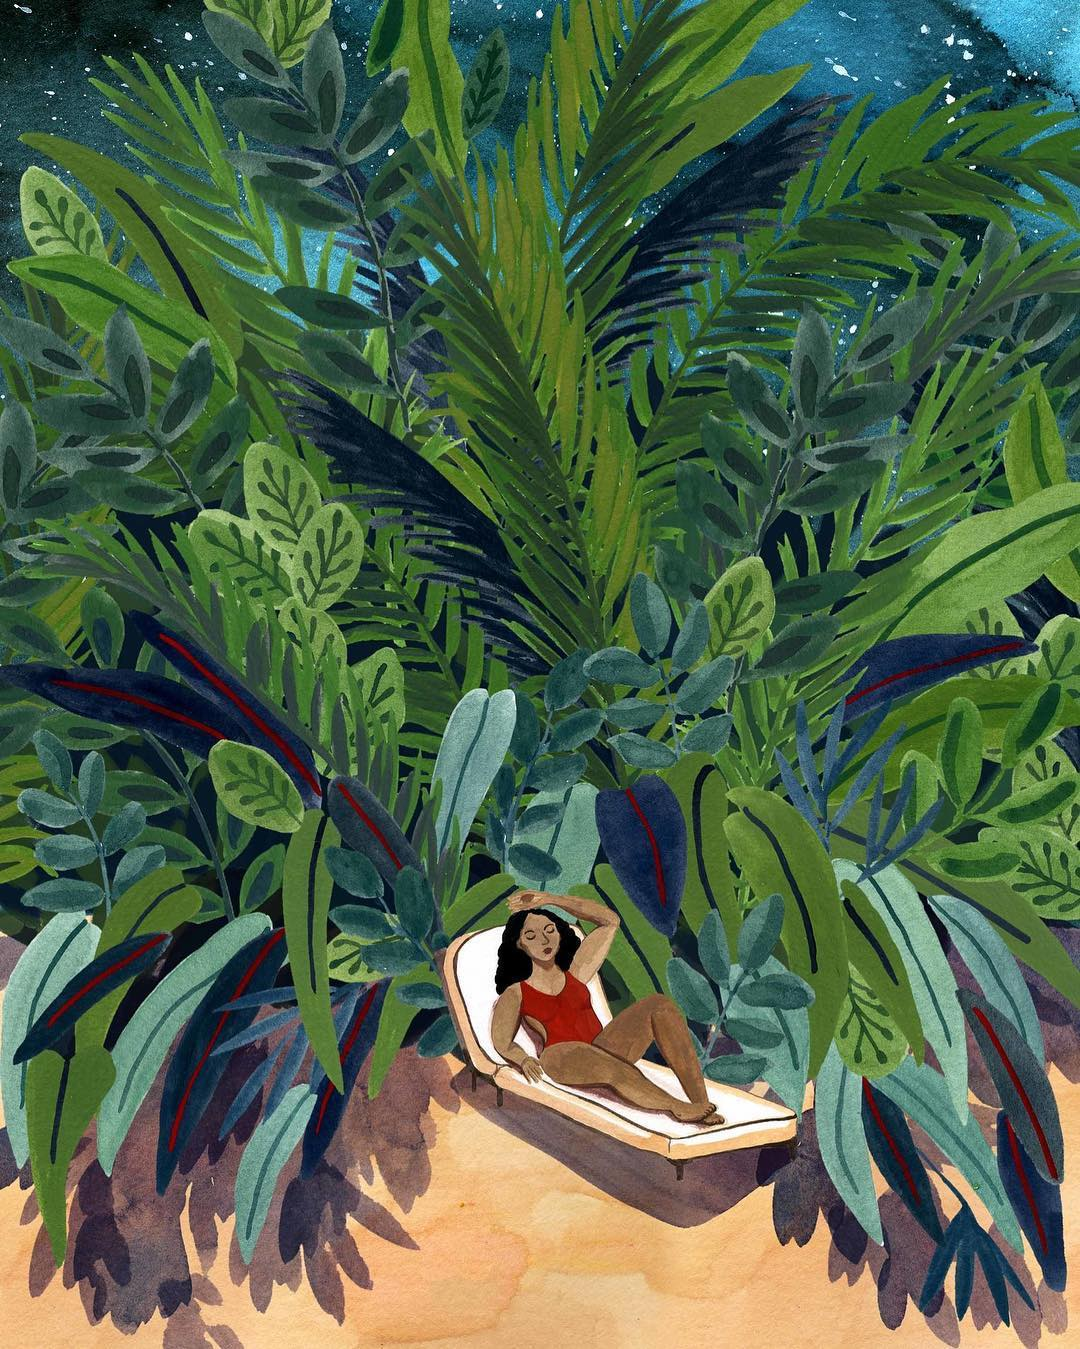 Summer illustrations by Angela McKay